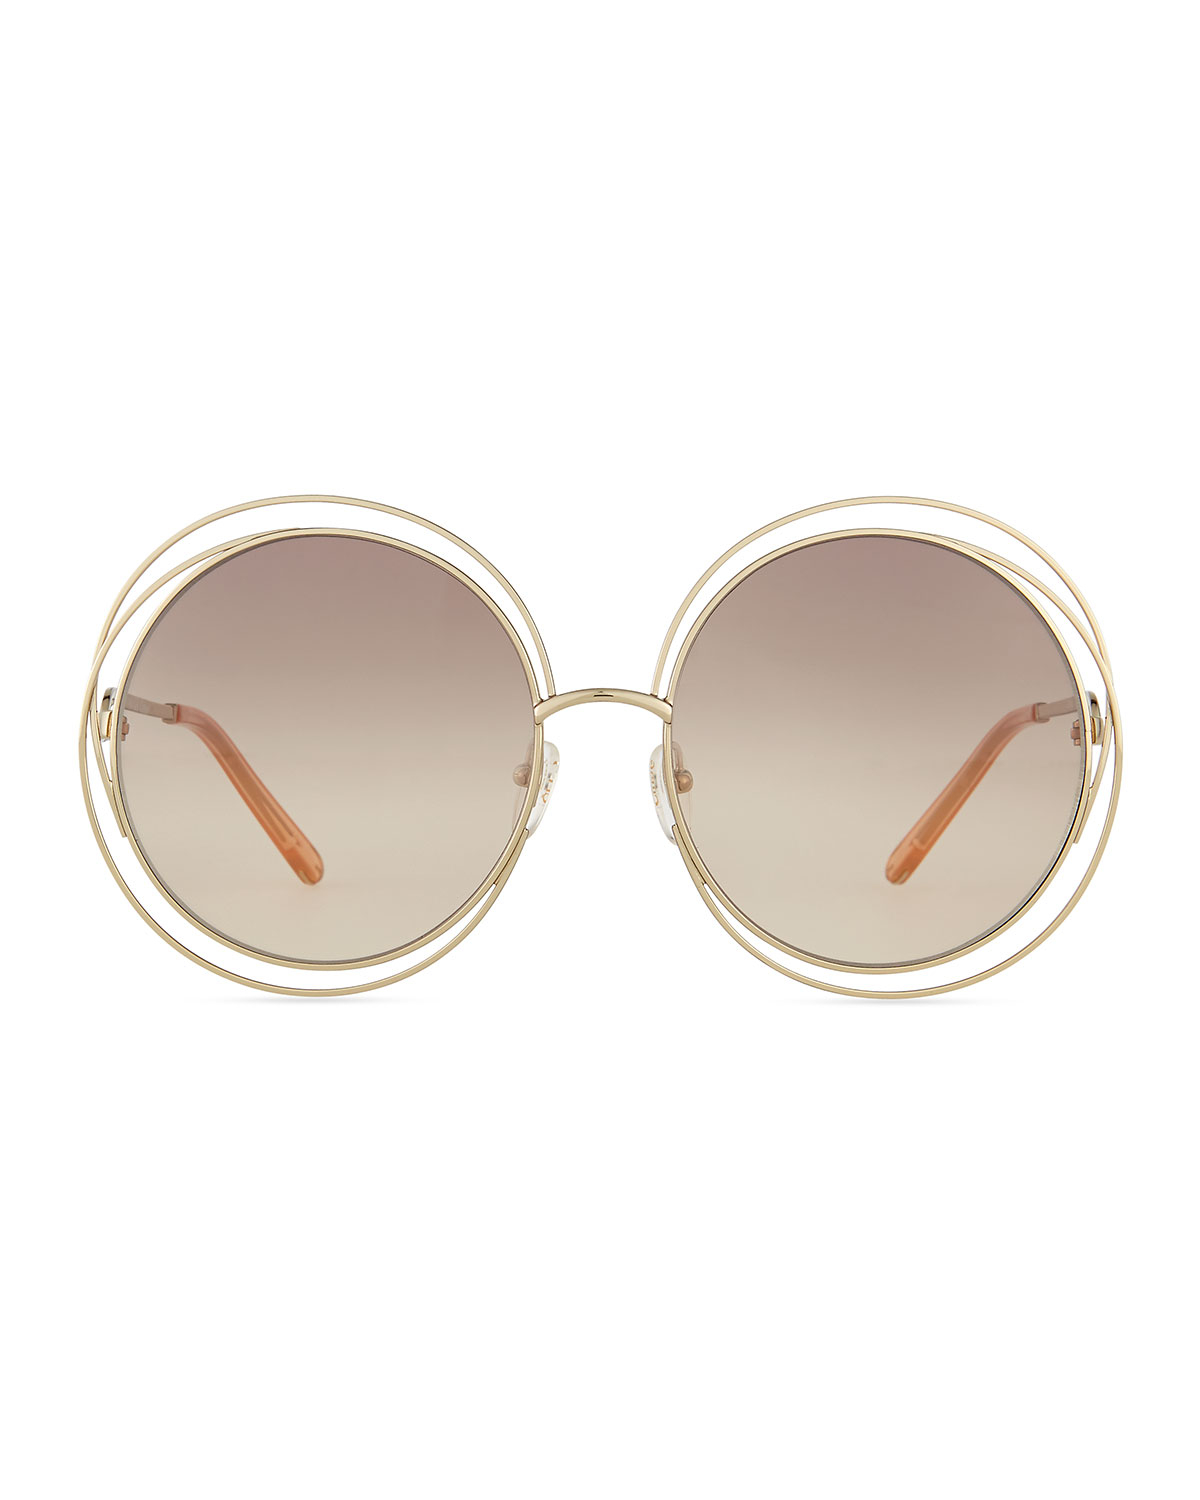 Chloe Gold Frame Sunglasses : Chloe Carlina Round Wire Metal Sunglasses in Pink Lyst